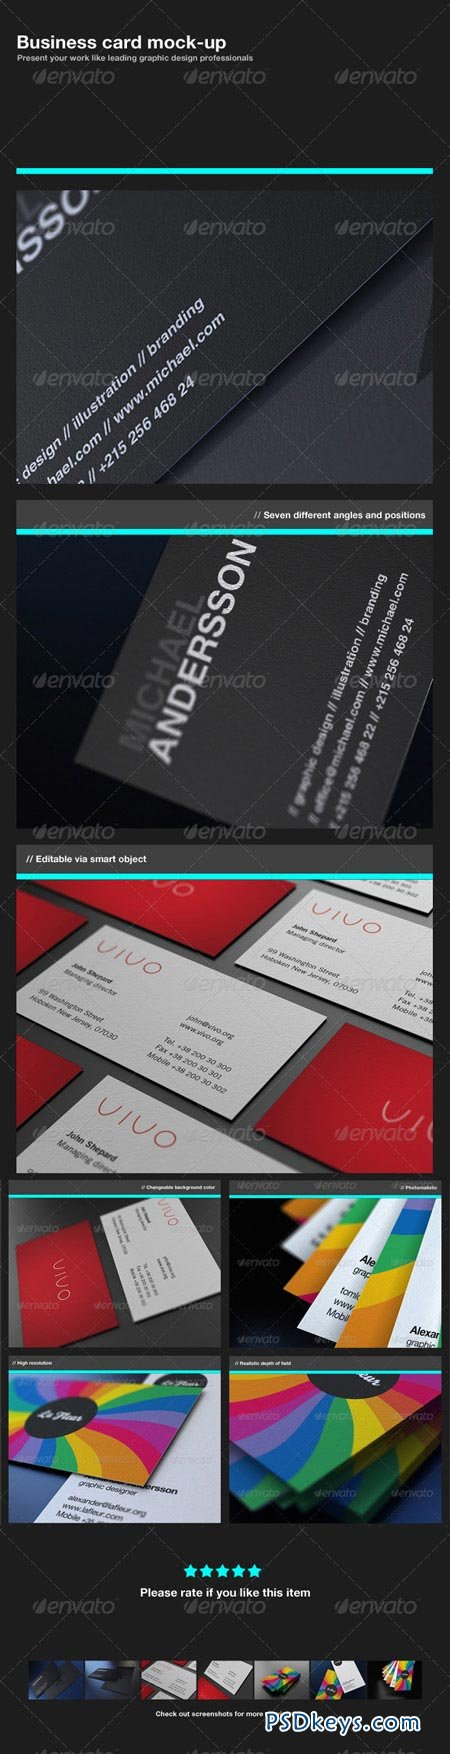 Business Card Mock-Up 319932